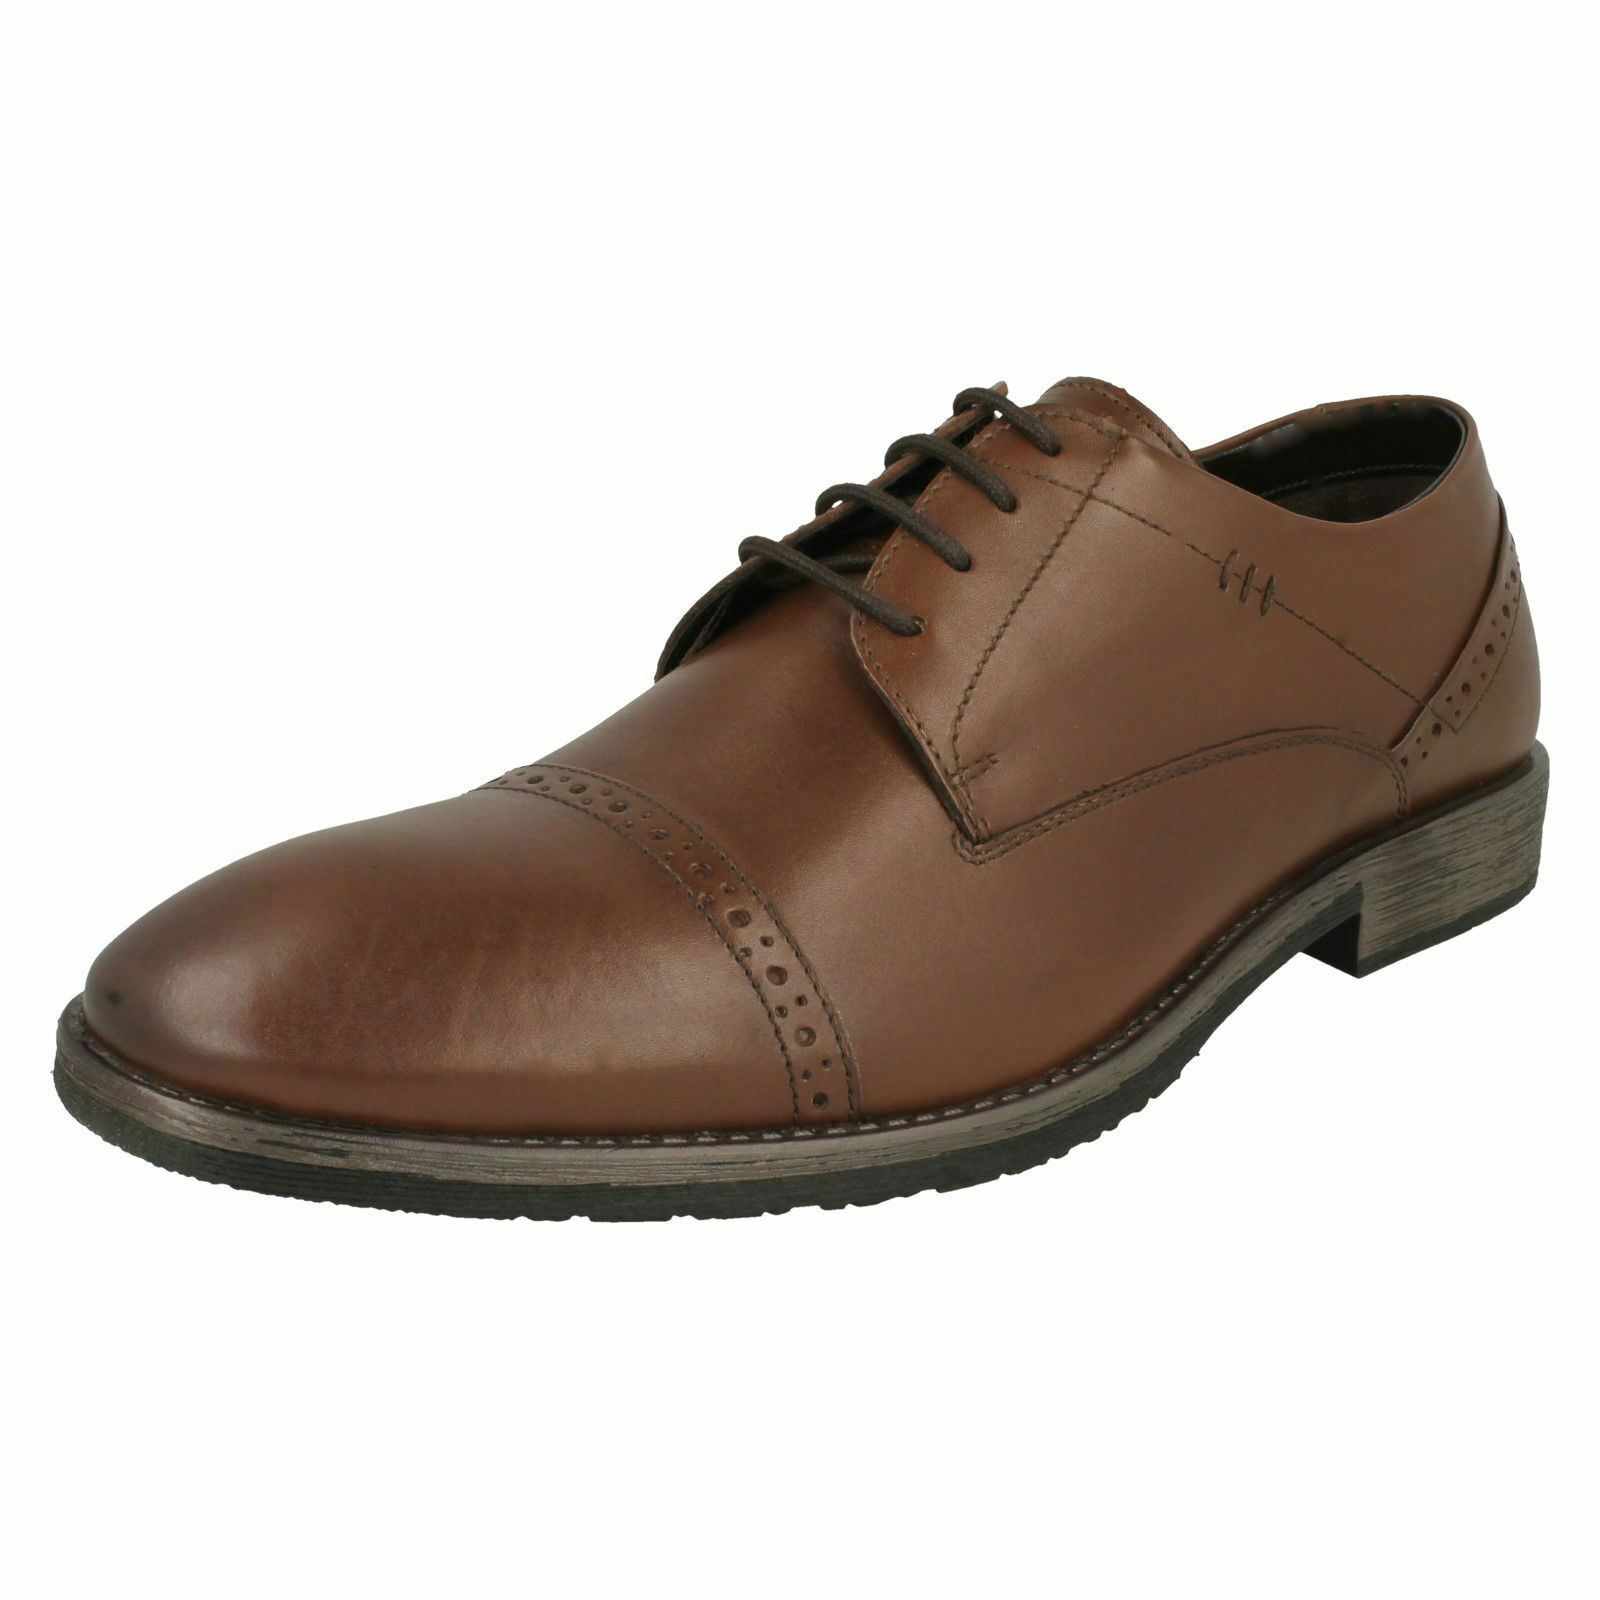 Da Uomo Hush Puppies Smart Stringati Luganda in pelle Scarpe Craig Luganda Stringati 155fb3